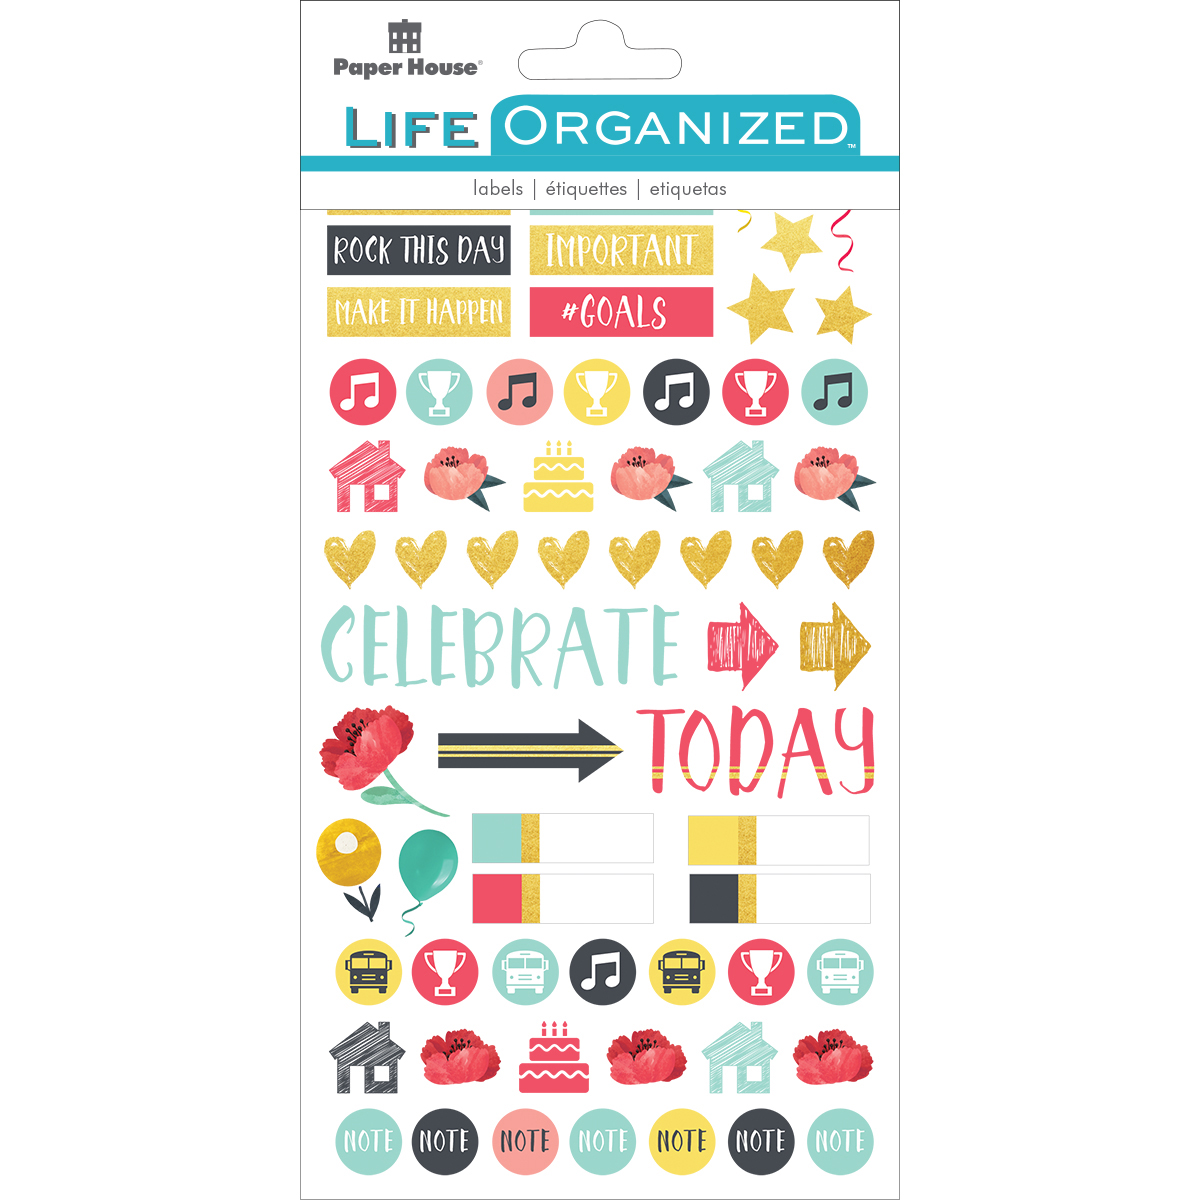 Family - Paper House Life Organized Planner Stickers 4.5